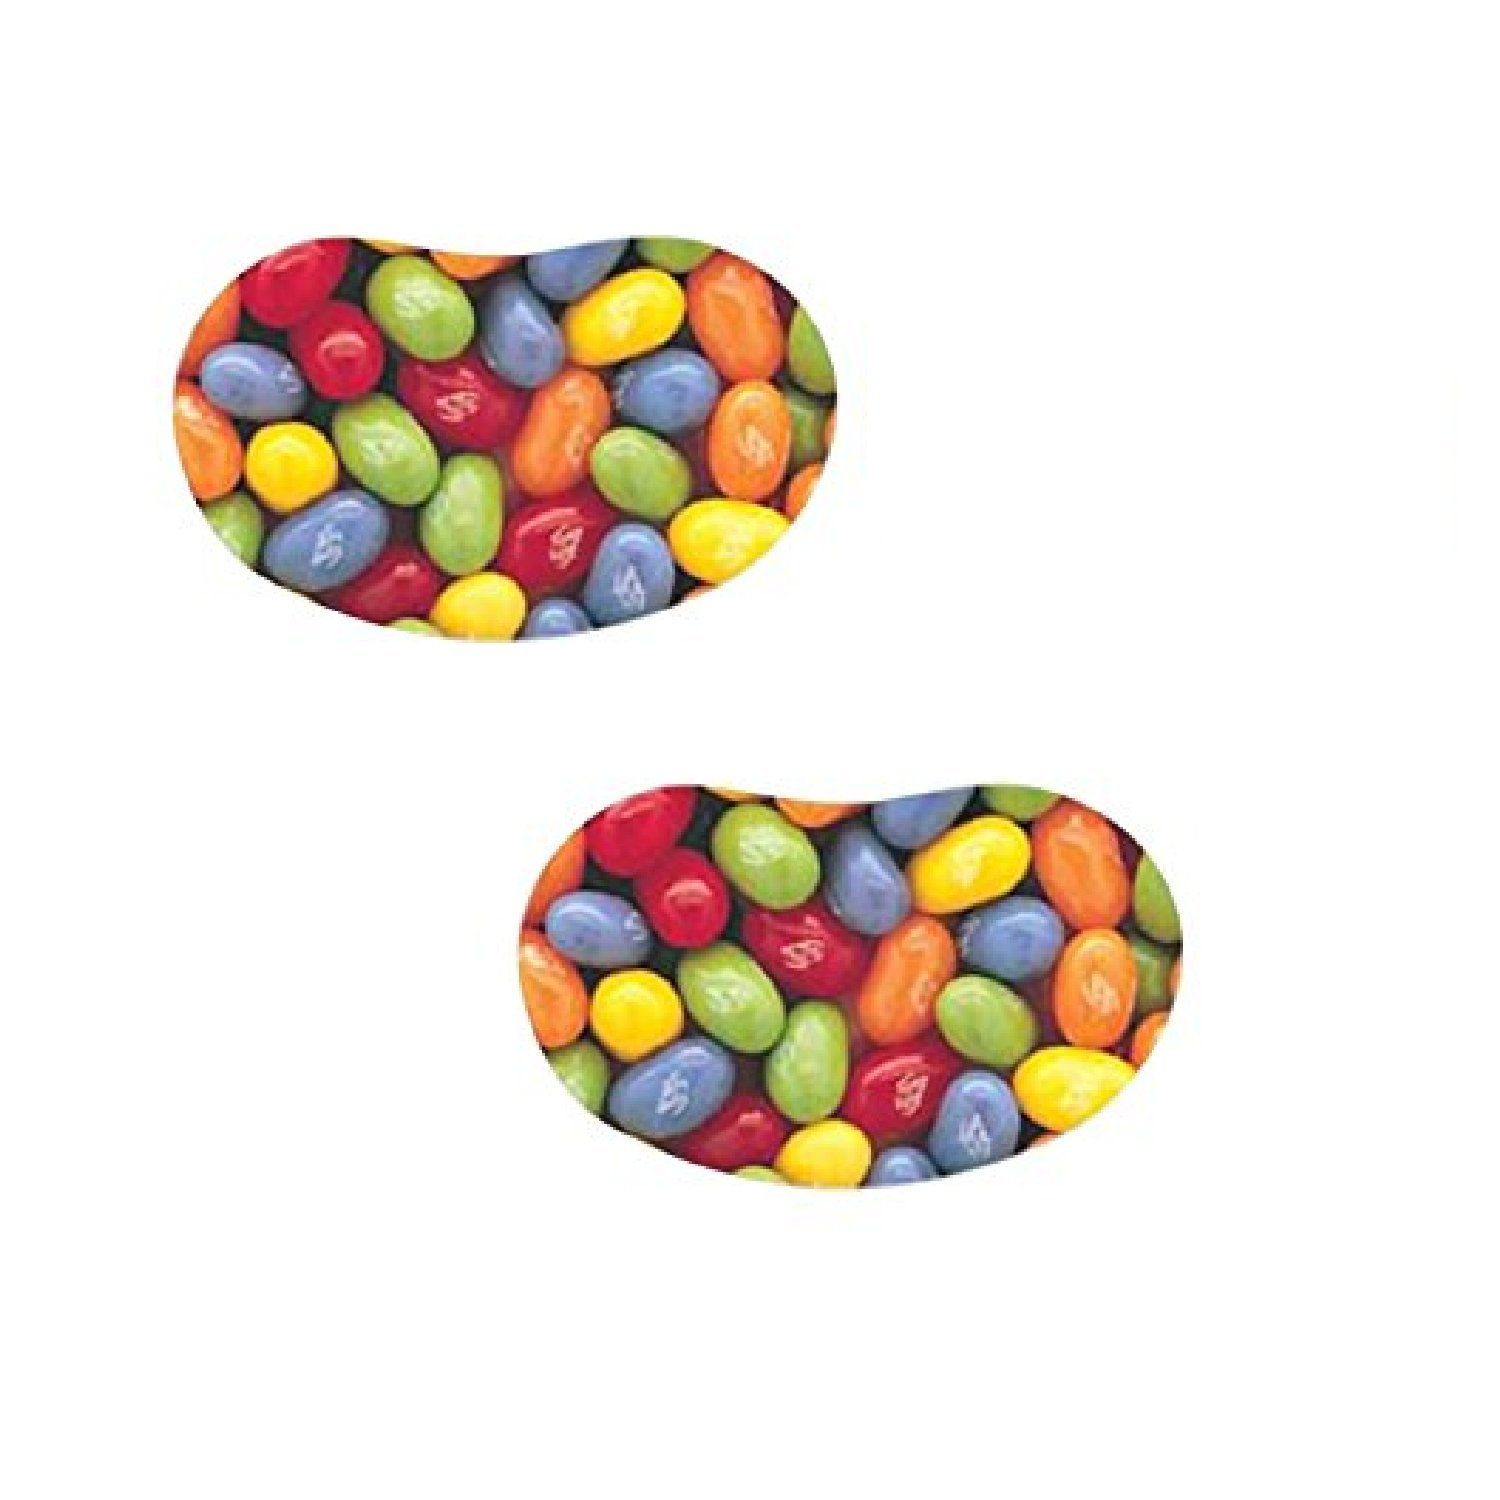 Jelly Belly - Sours Mix Jelly Beans (2 Pounds)